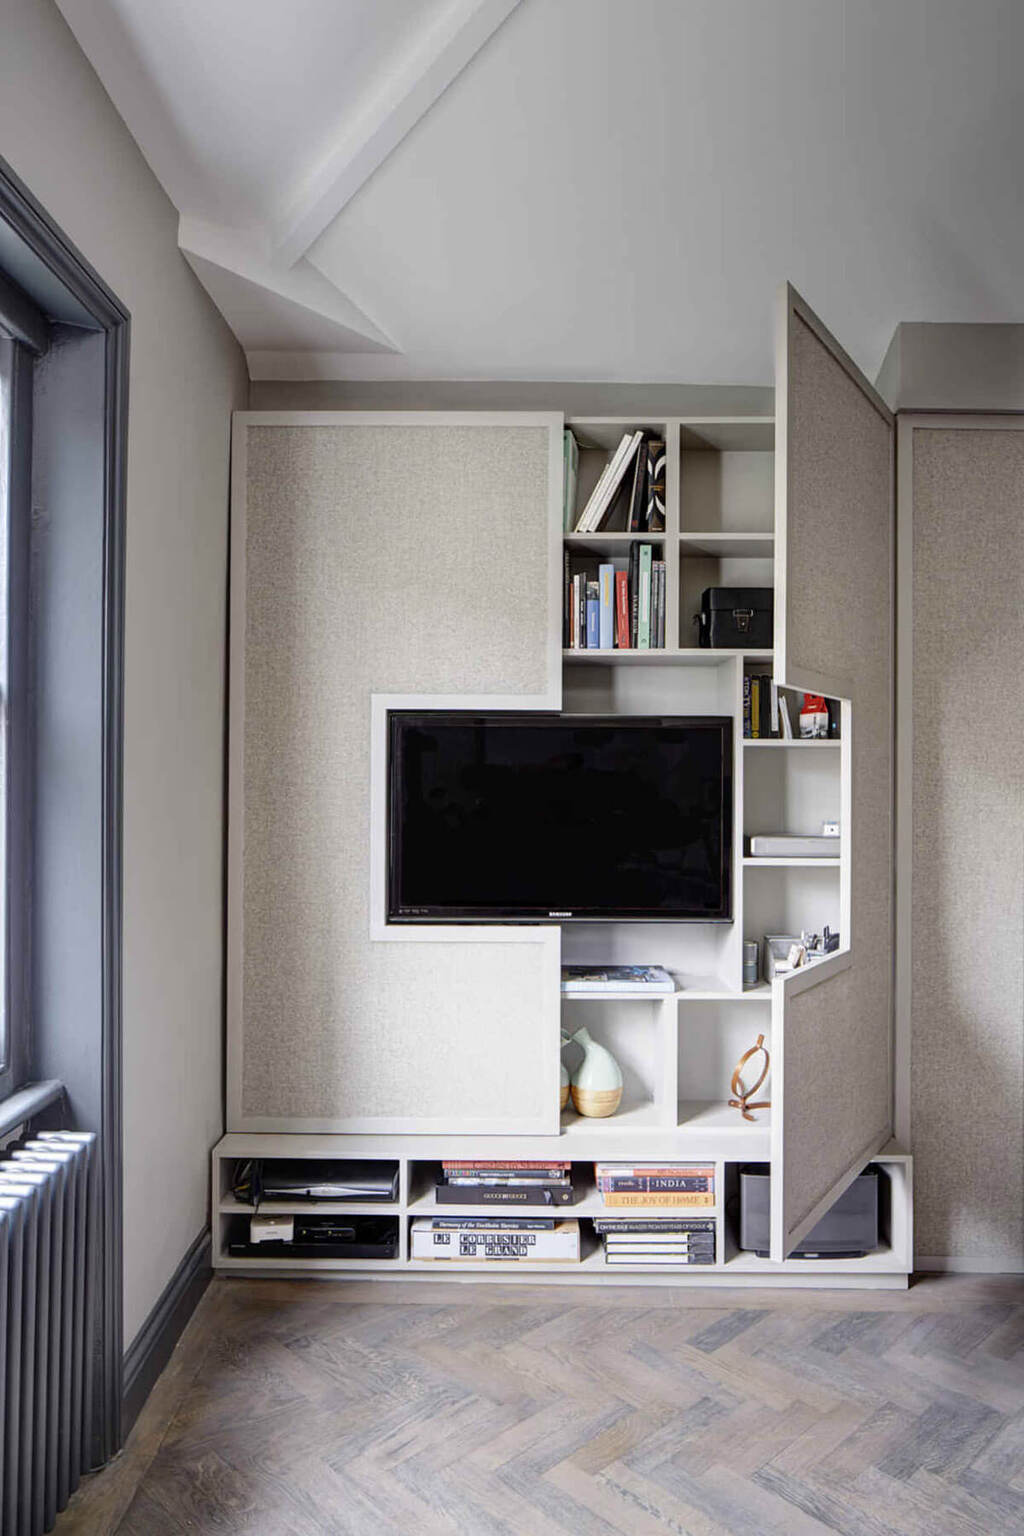 Wall Design With Cabinets